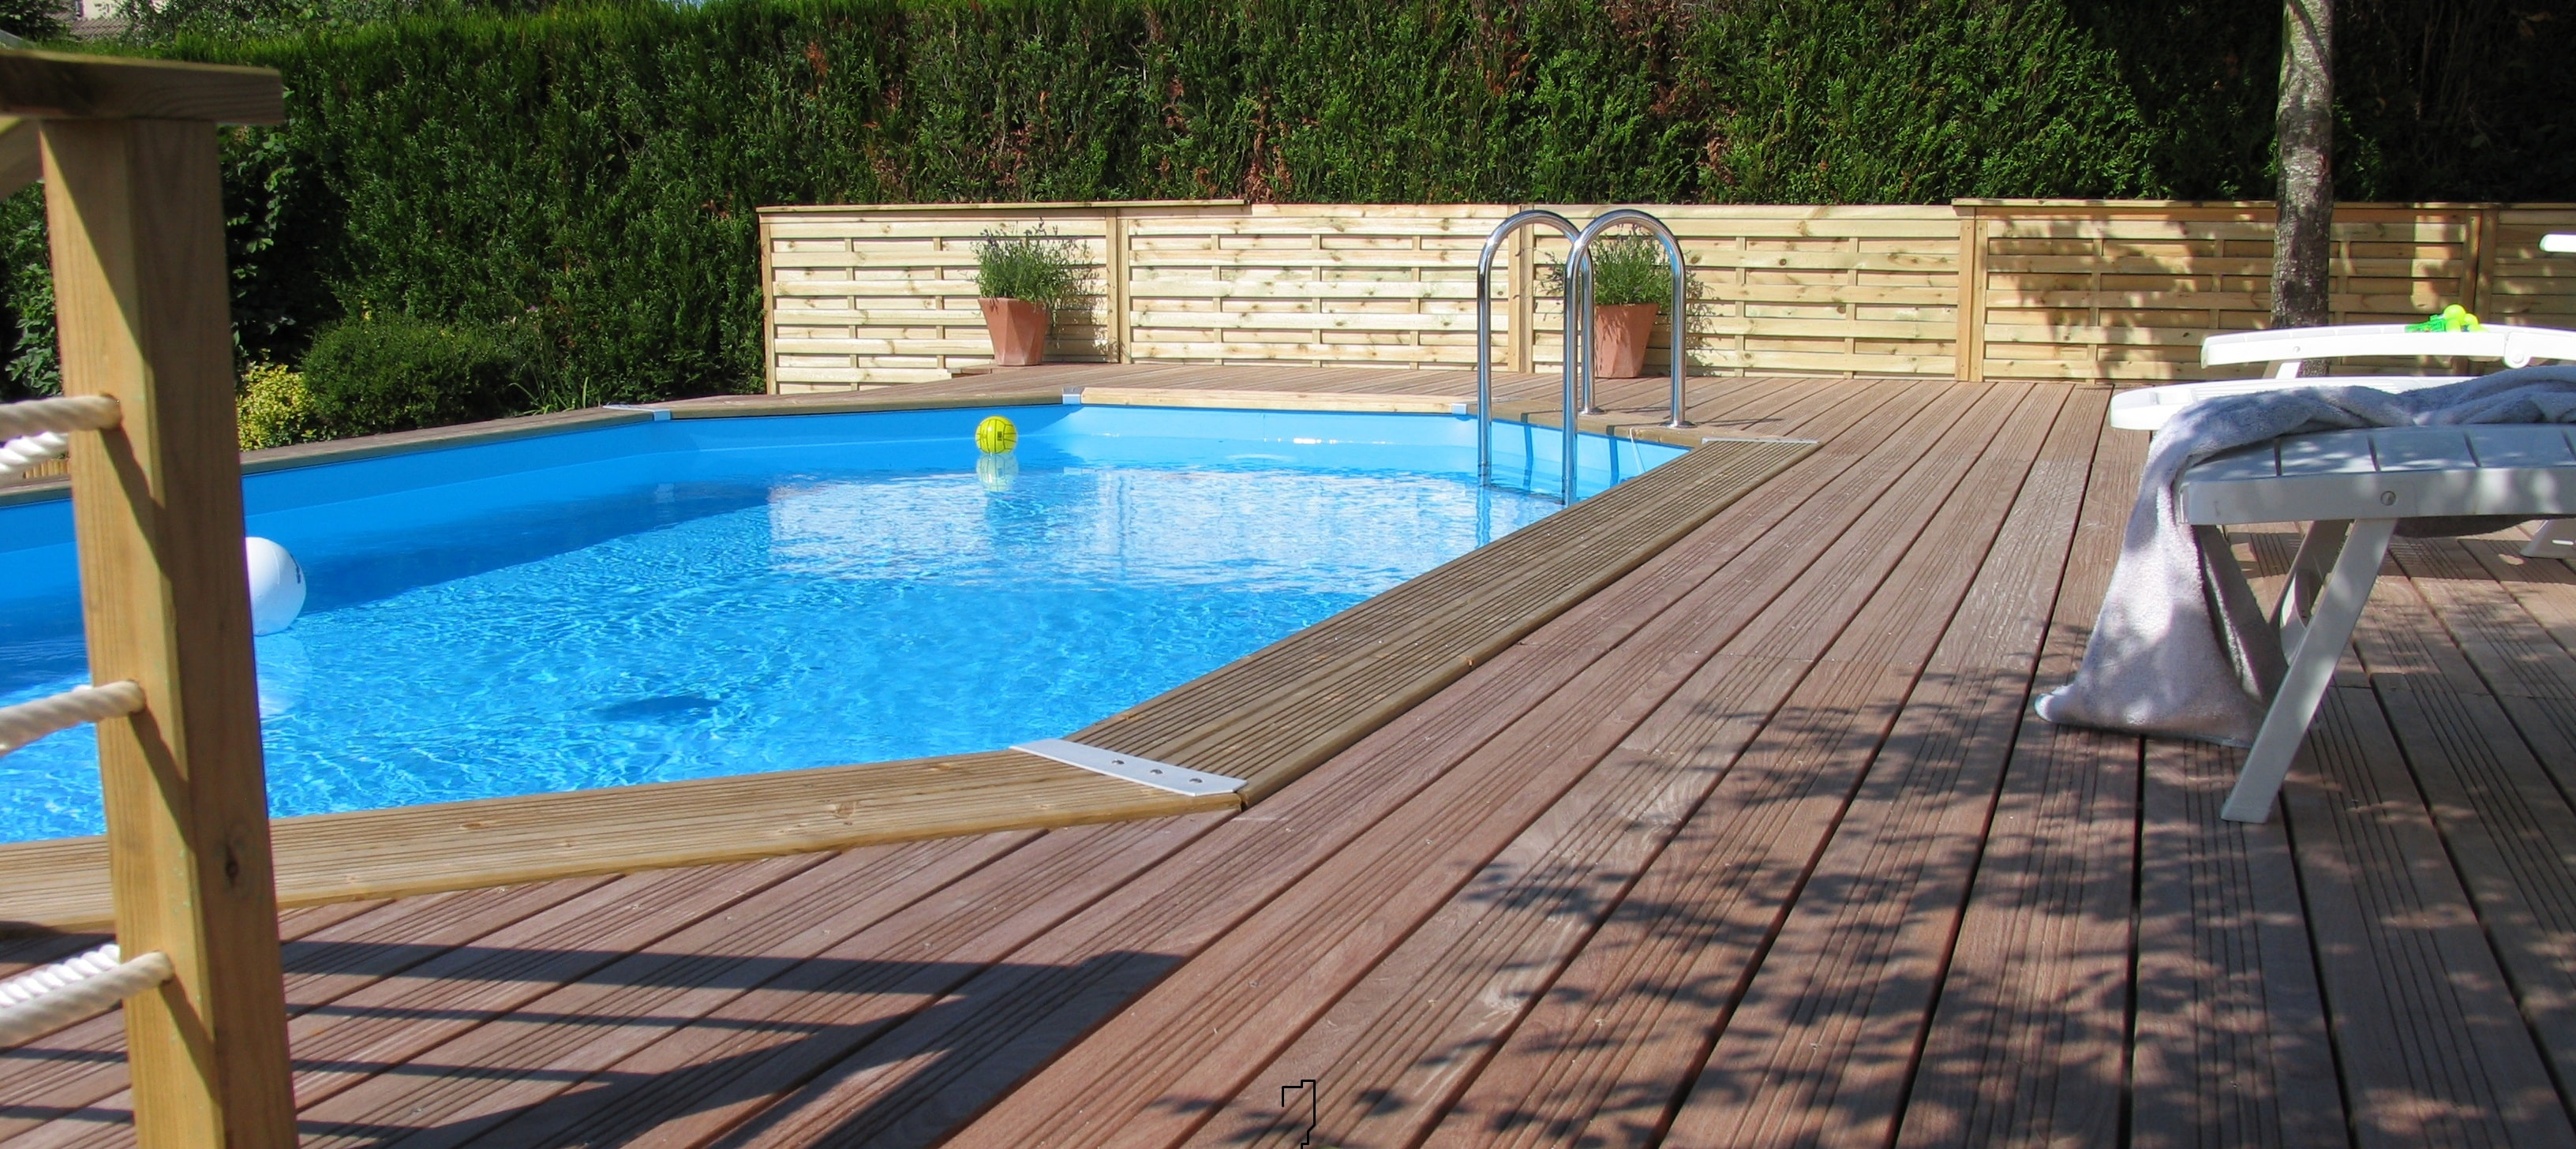 Piscine en bois comment l 39 installer blog jardin for Installer une piscine